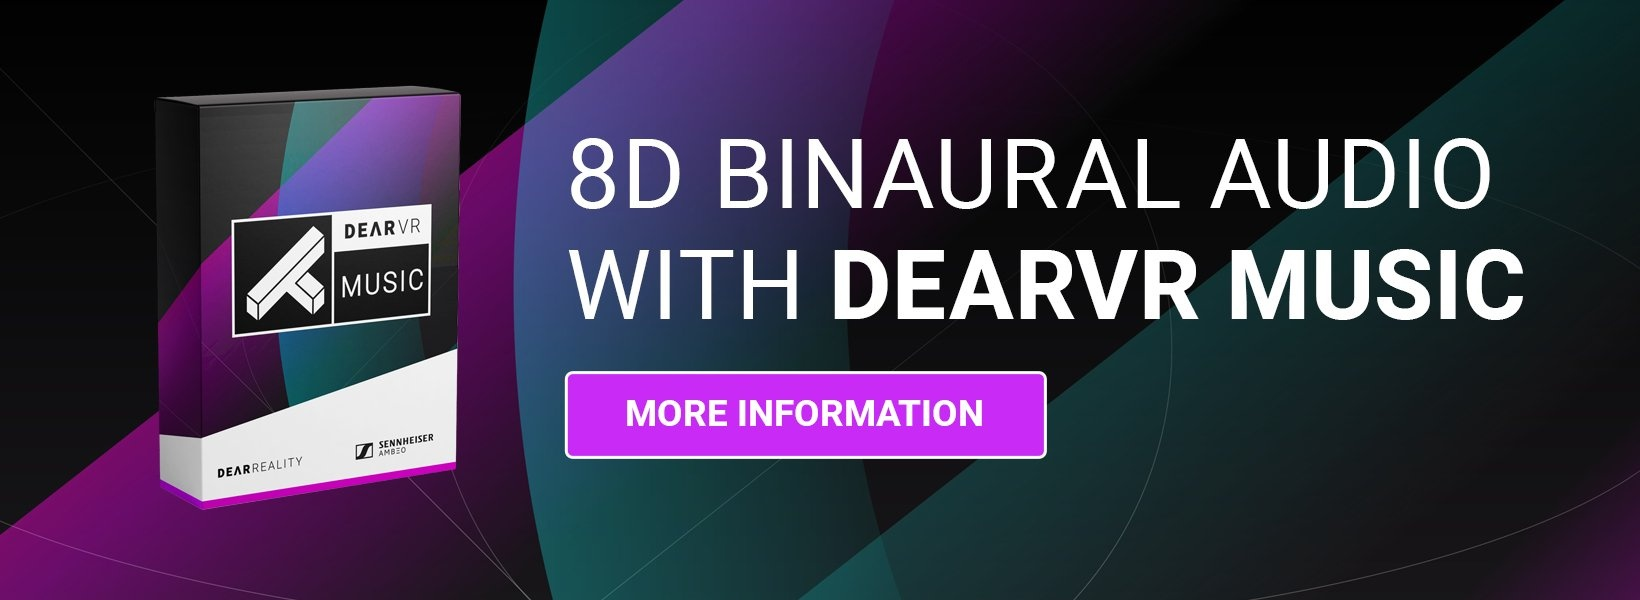 dearVR MUSIC - More Information